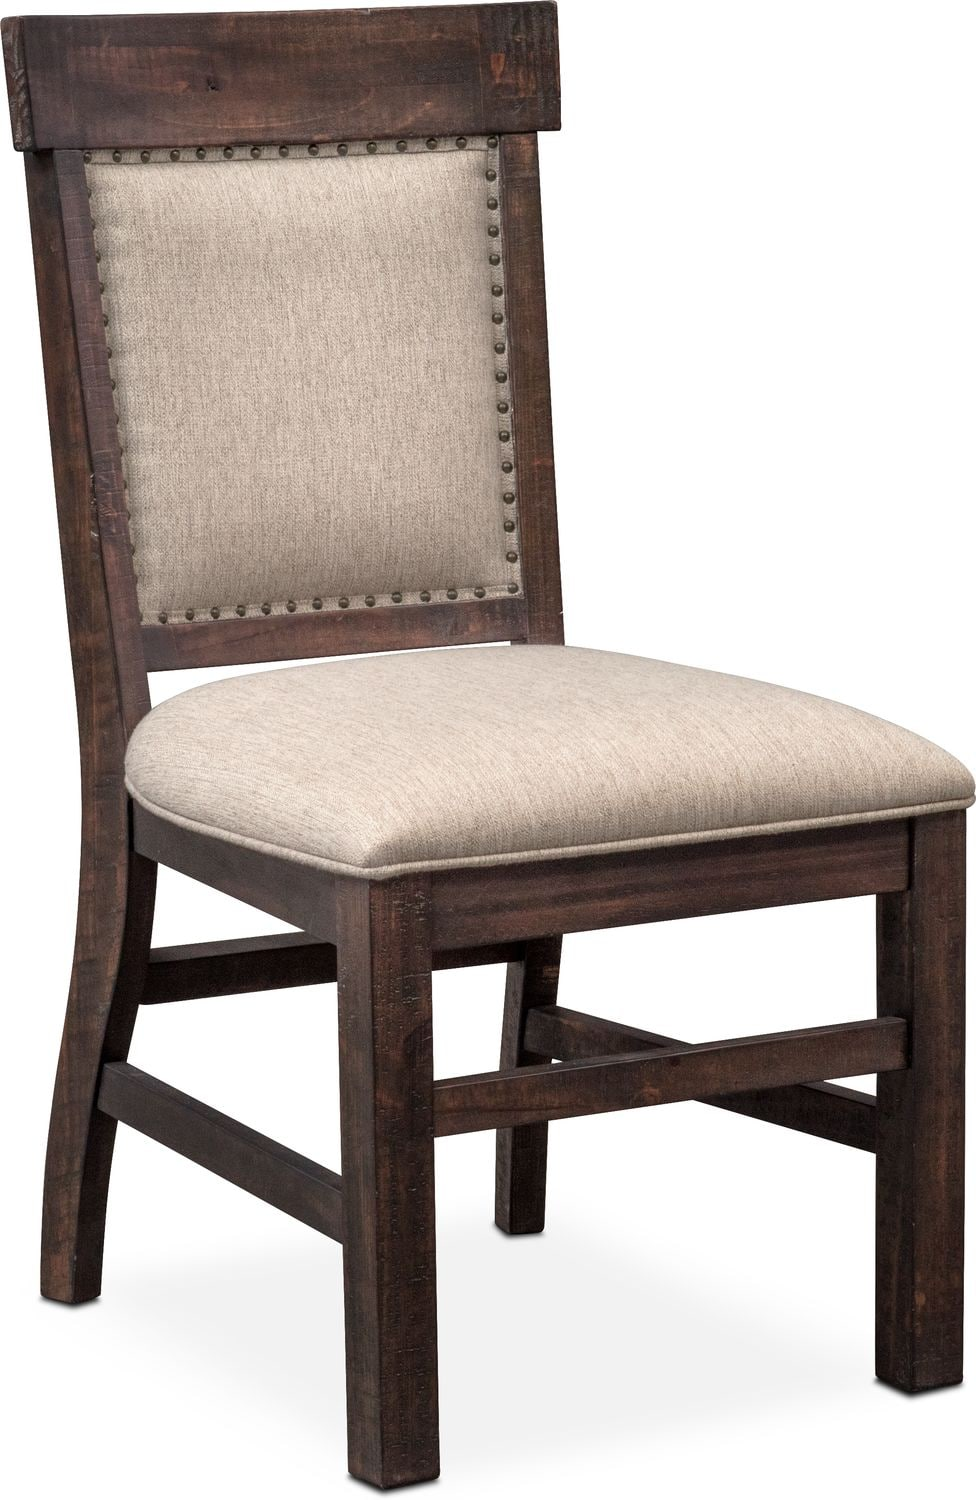 Charthouse Upholstered Side Chair   Charcoal ...